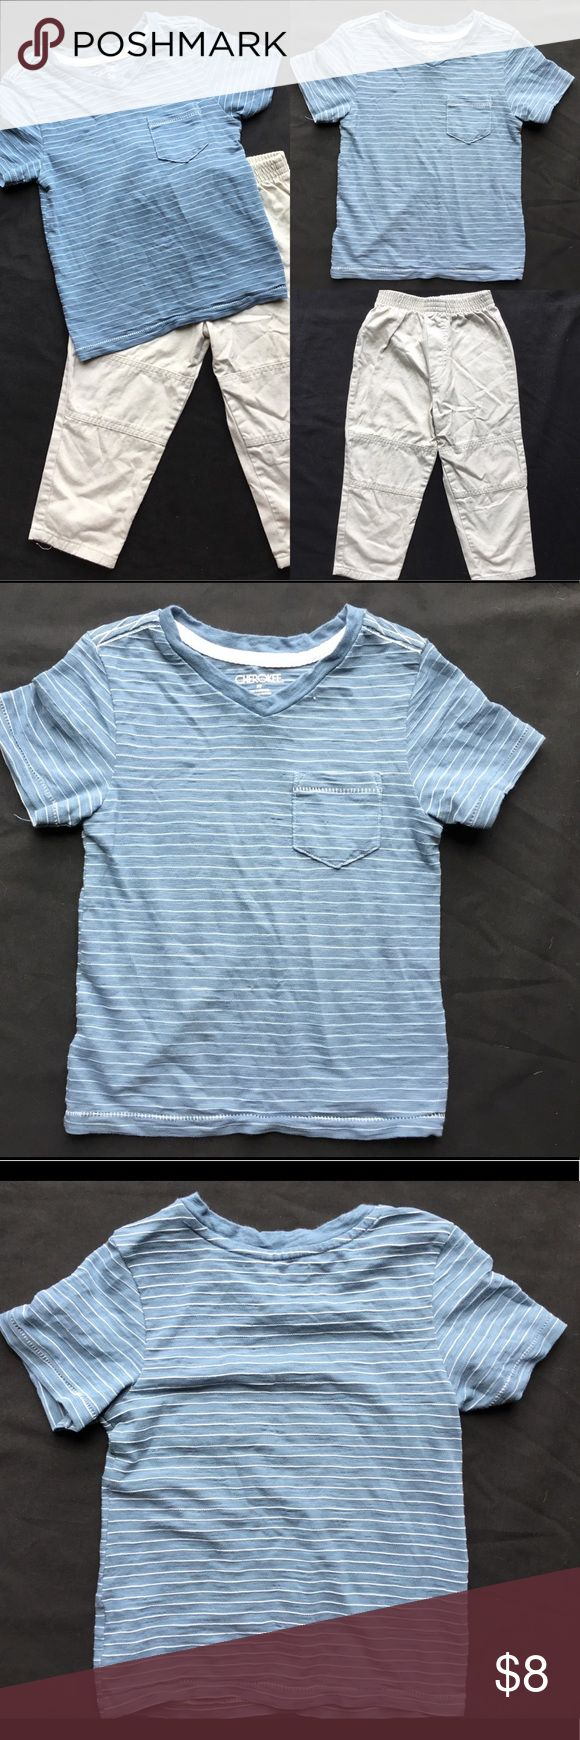 Boy's 3T V-Neck and Khaki Outfit Gently used boy's 3T outfit.  Cherokee slate blue and white striped v-neck t-shirt.  Okie Dokie khaki pants with an elastic waist.  Both items have wash wear but not stains or holes. Matching Sets